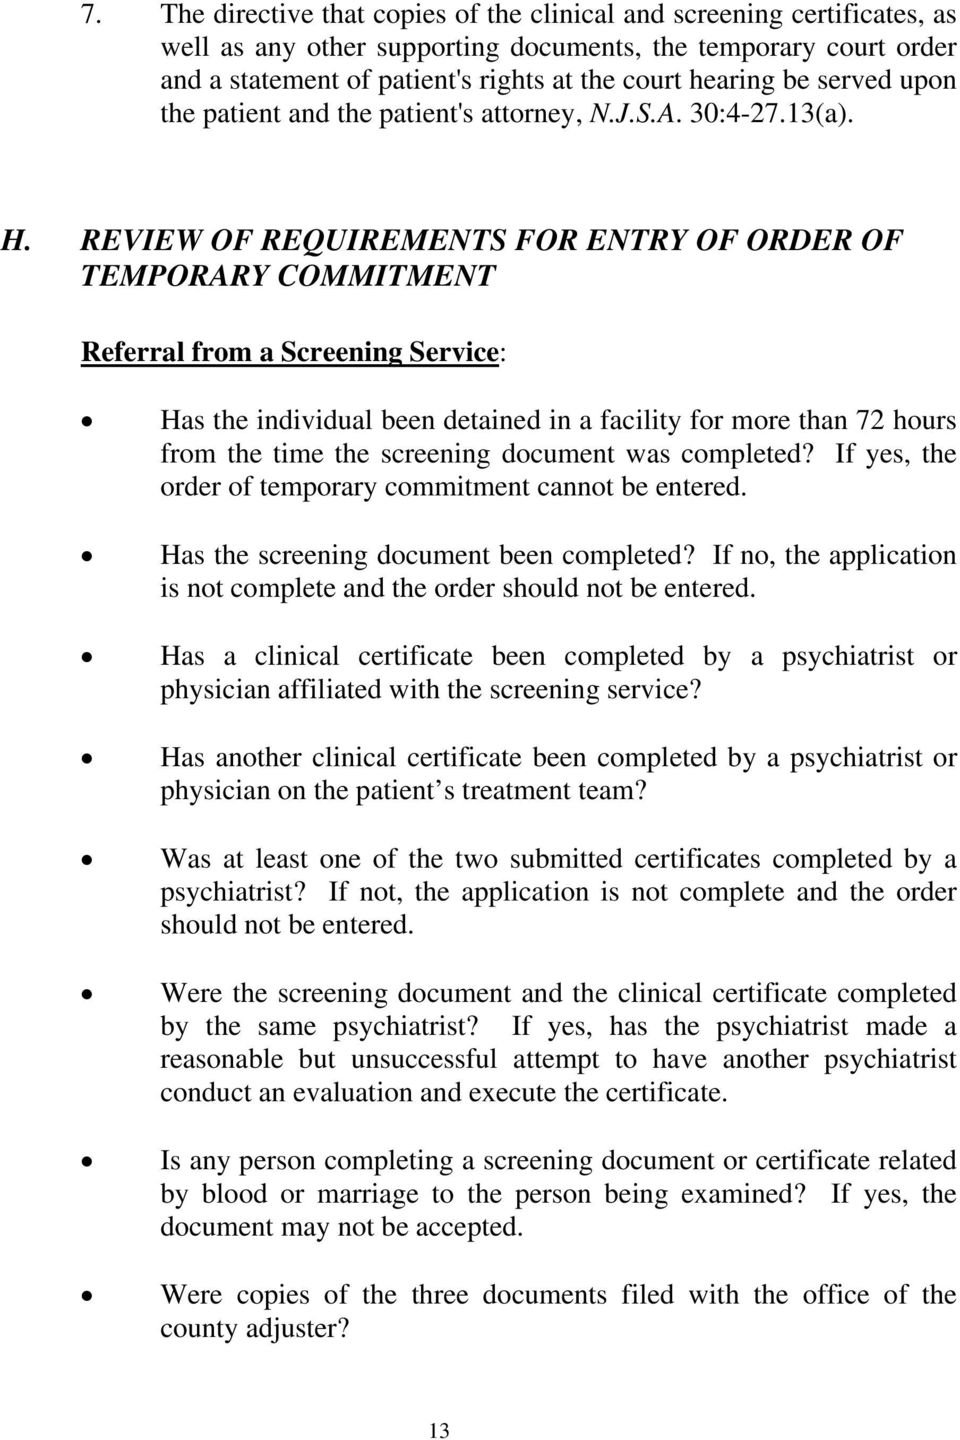 REVIEW OF REQUIREMENTS FOR ENTRY OF ORDER OF TEMPORARY COMMITMENT Referral from a Screening Service: Has the individual been detained in a facility for more than 72 hours from the time the screening